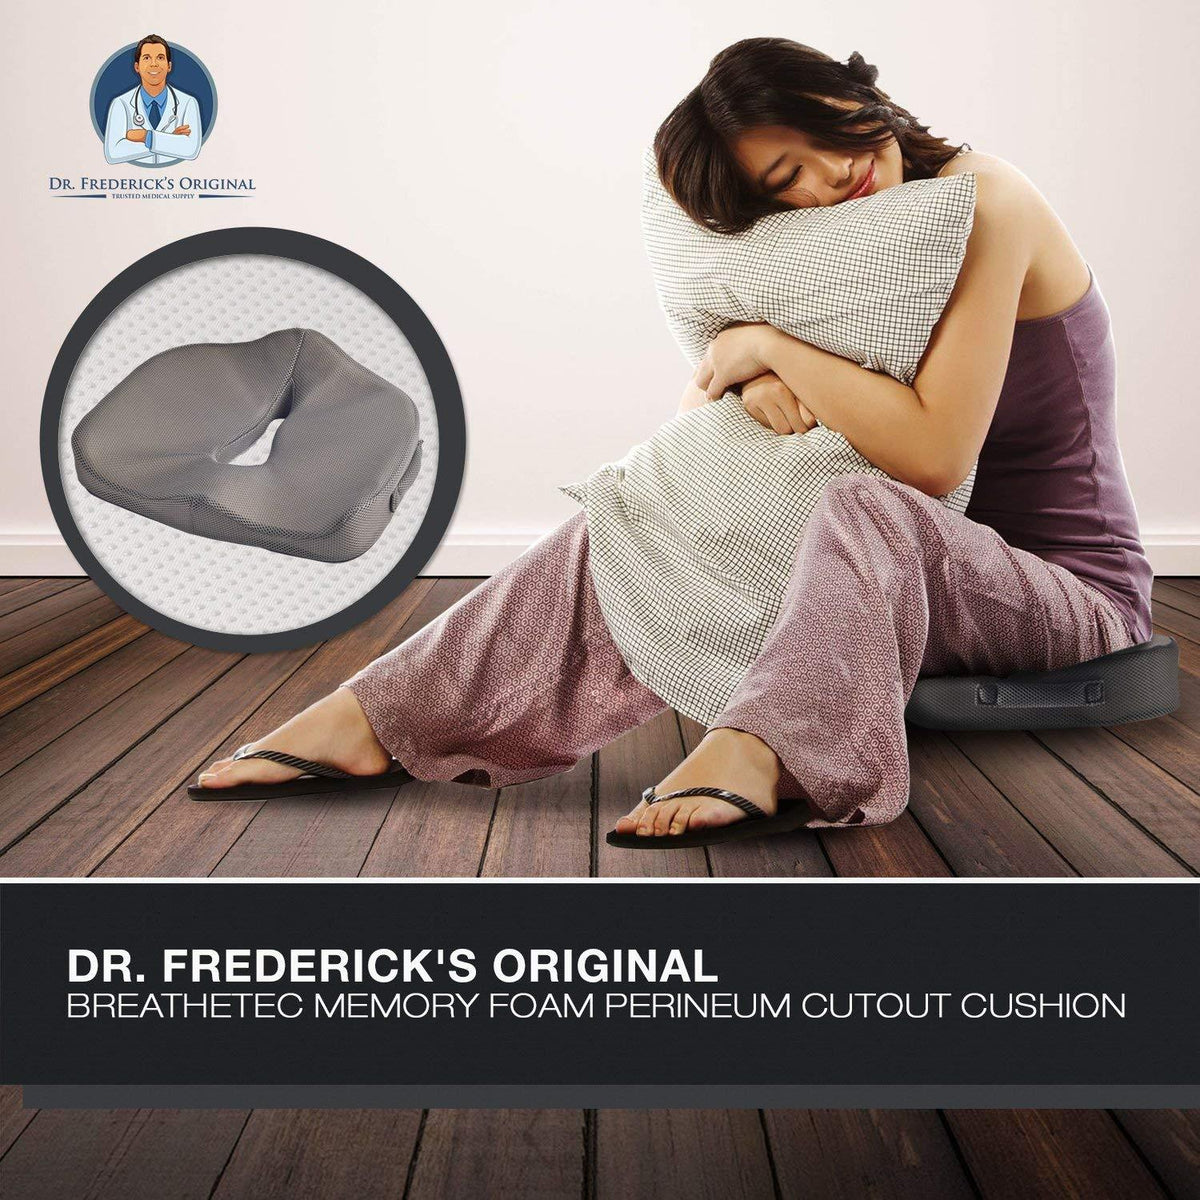 Dr. Frederick's Original BreatheTEC Memory Foam Perineal Cushion - for Perineal Pain, Post-Partum Pain, and Prostatitis Back Pain Dr. Frederick's Original